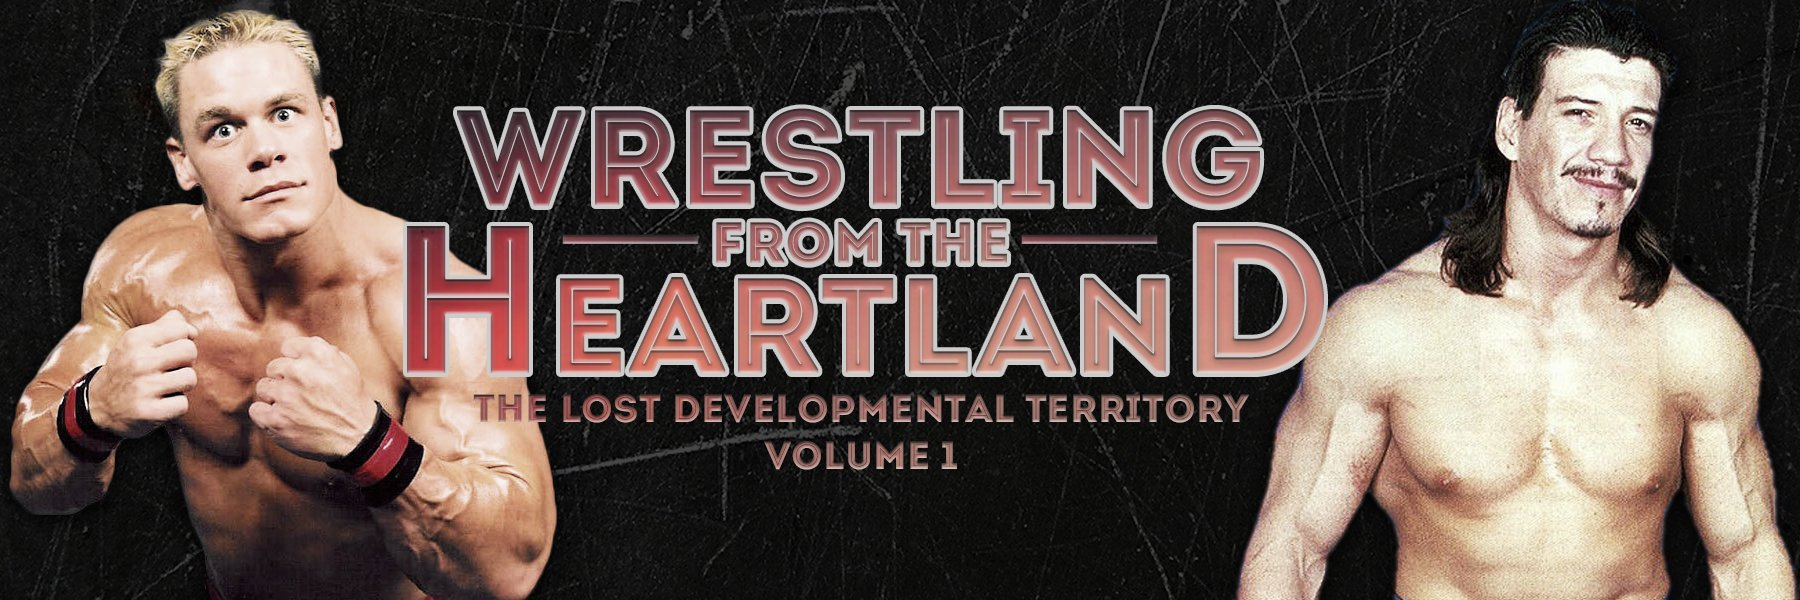 Journey through matches & stories from WWE's lost developmental territory!